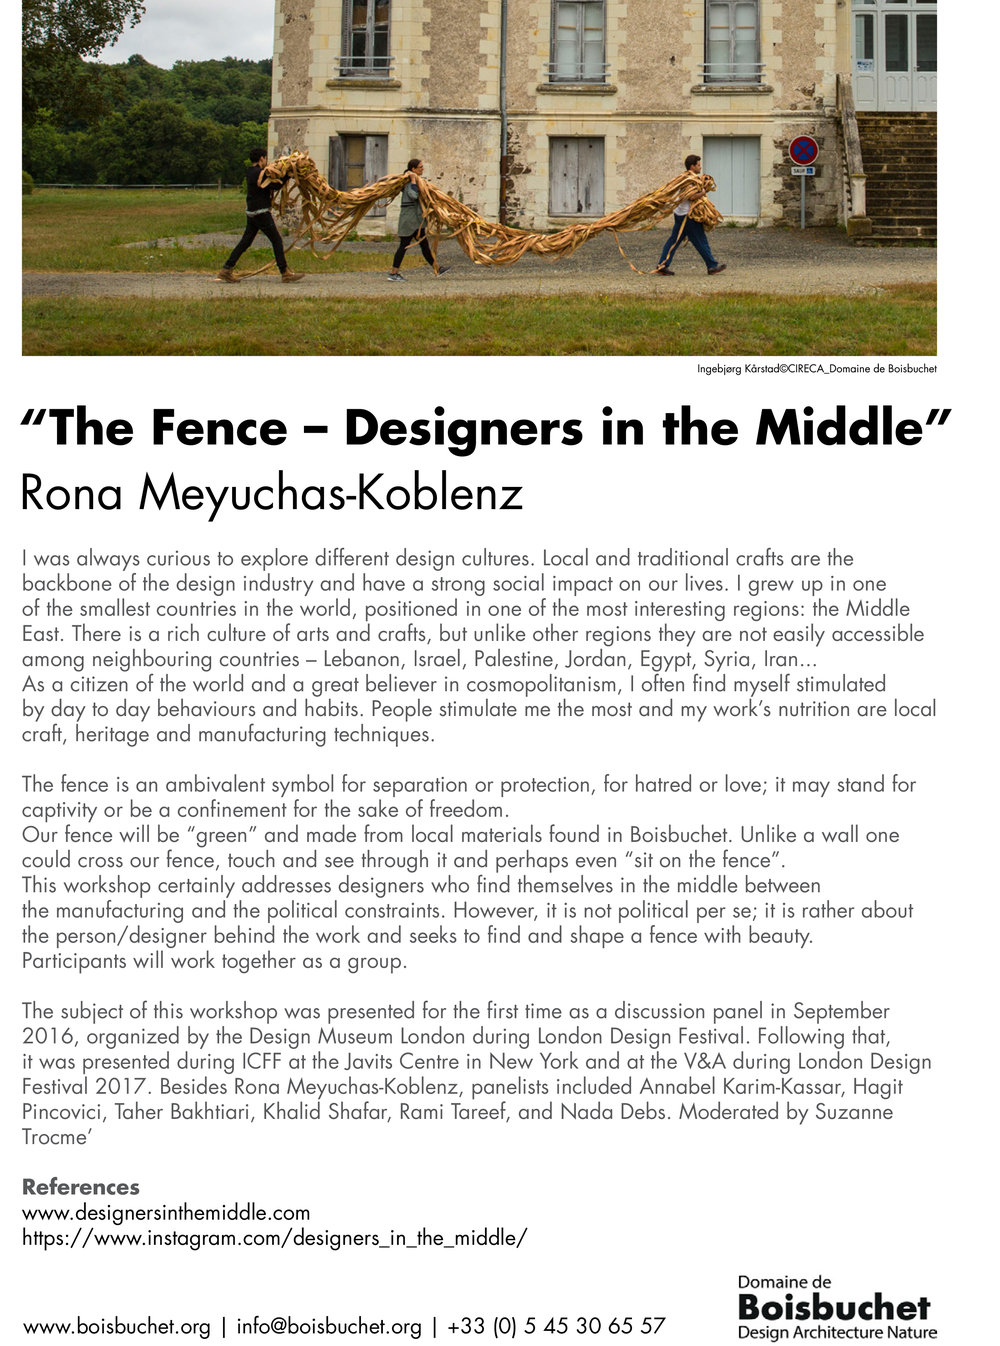 Boisbuchet2018_Rona Meyuchas-Koblenz _The fence-Designers in the middle01-1.jpg